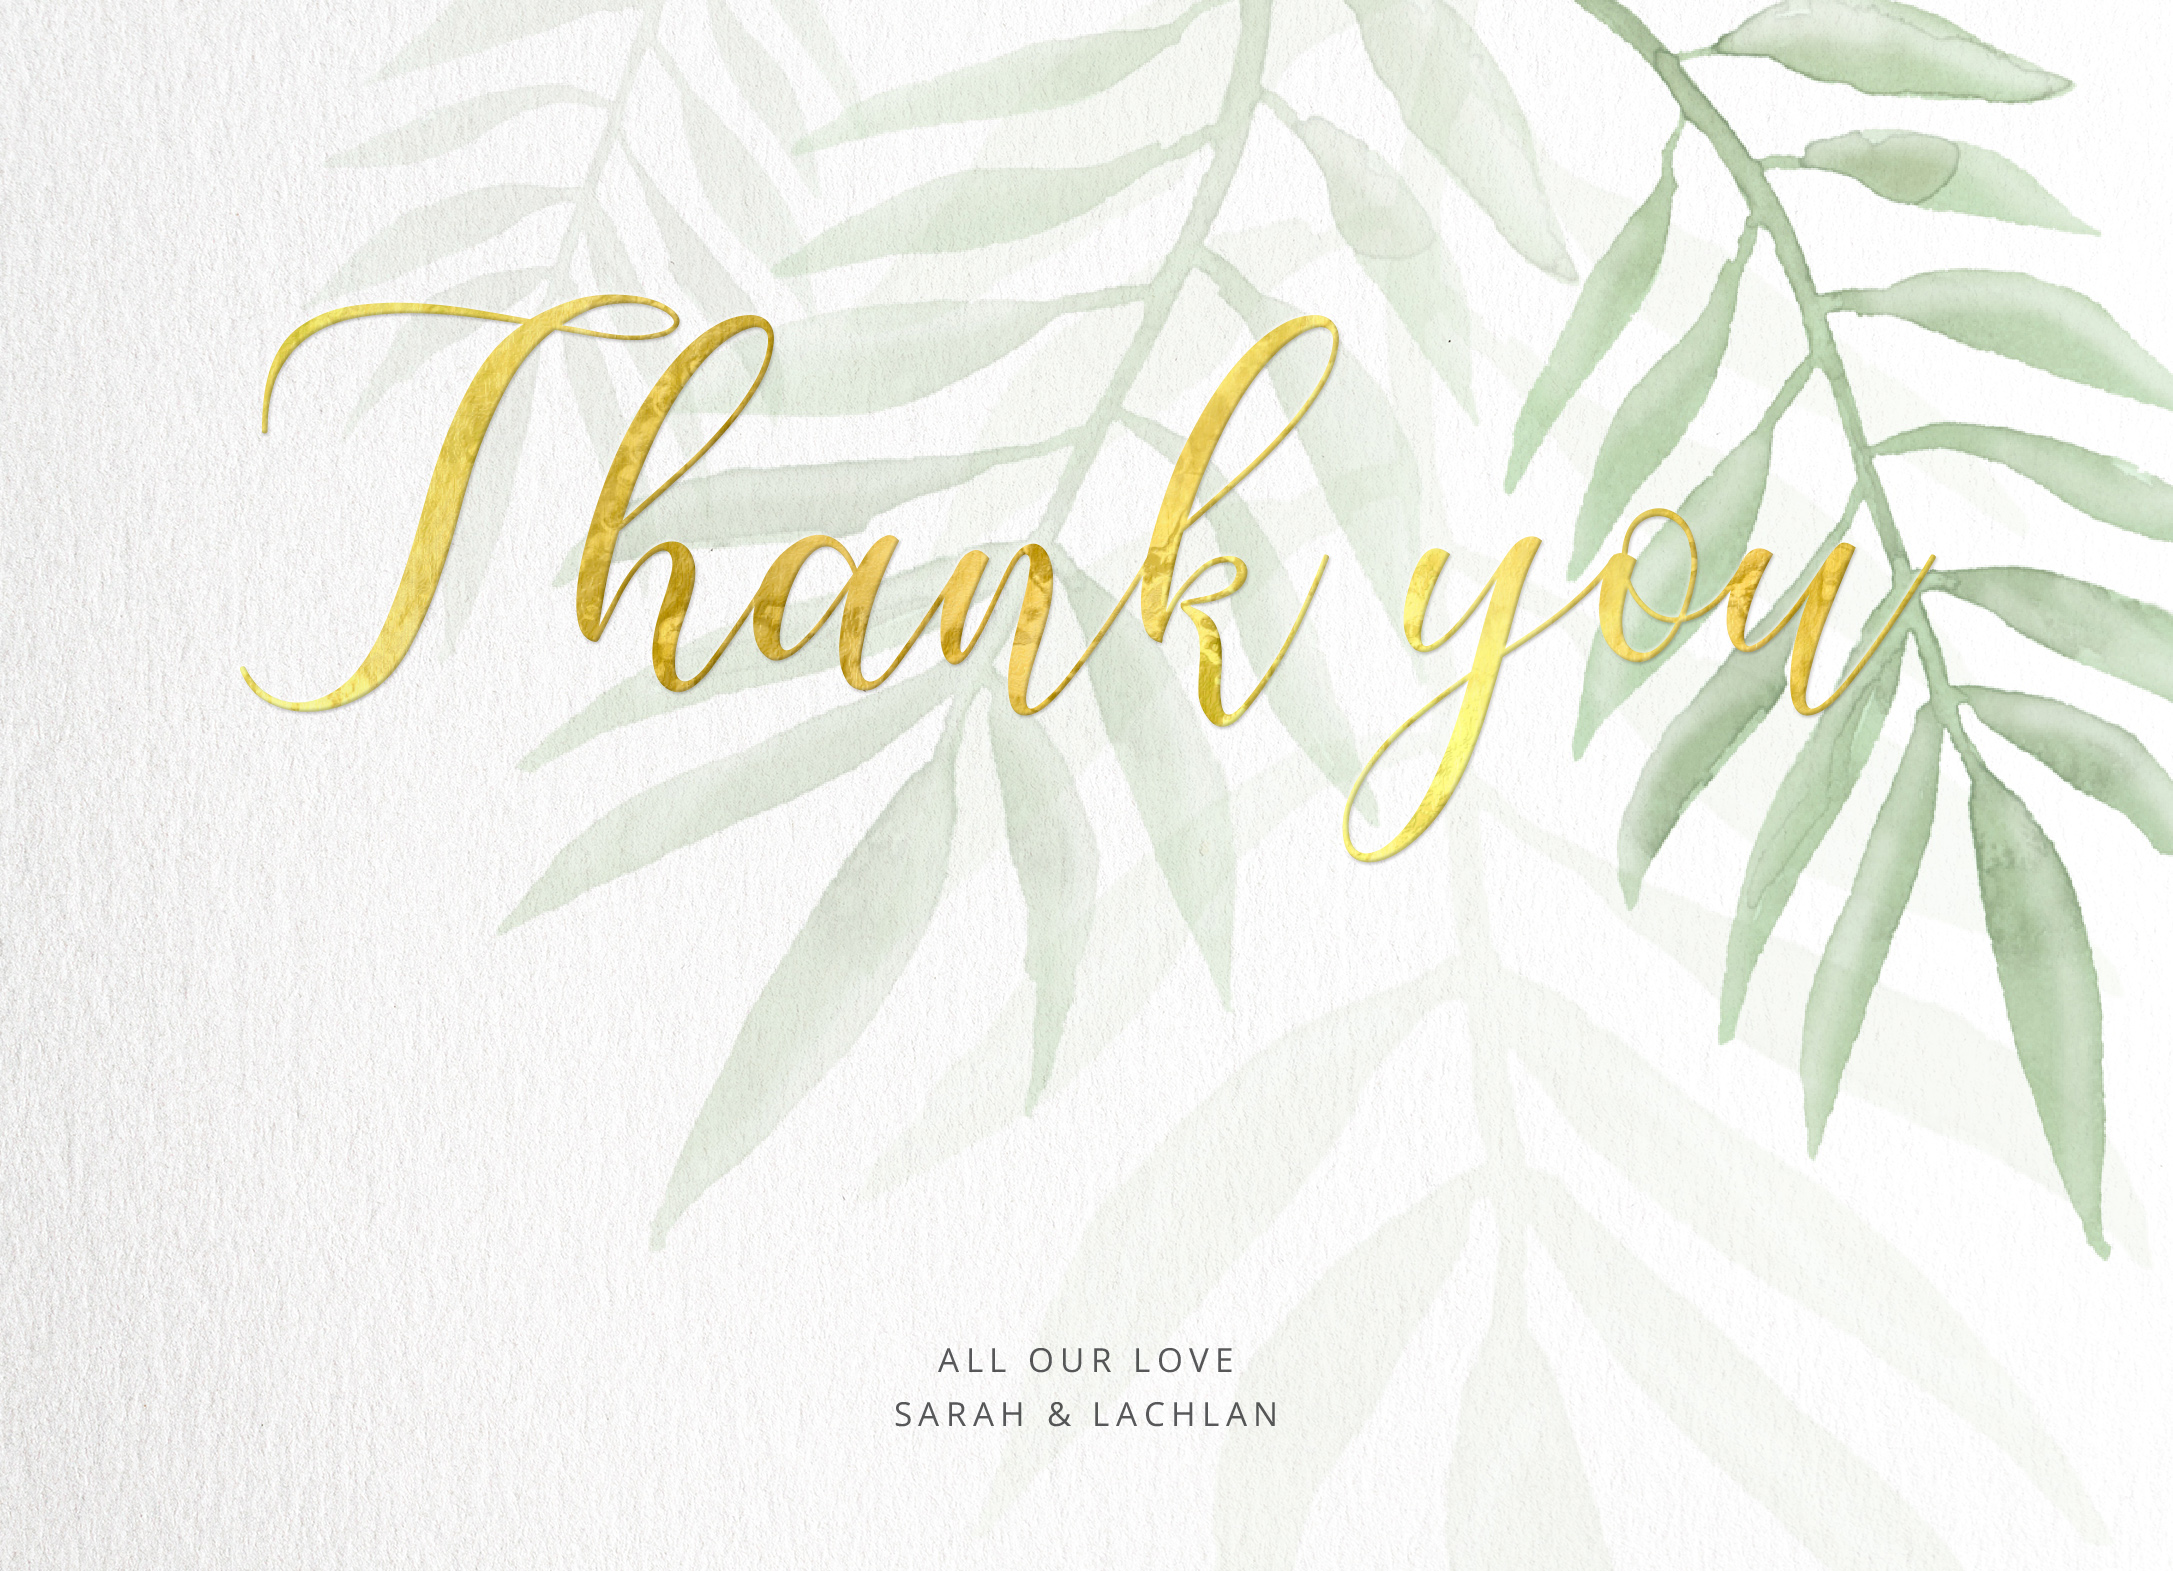 Forest Walk - Thank You